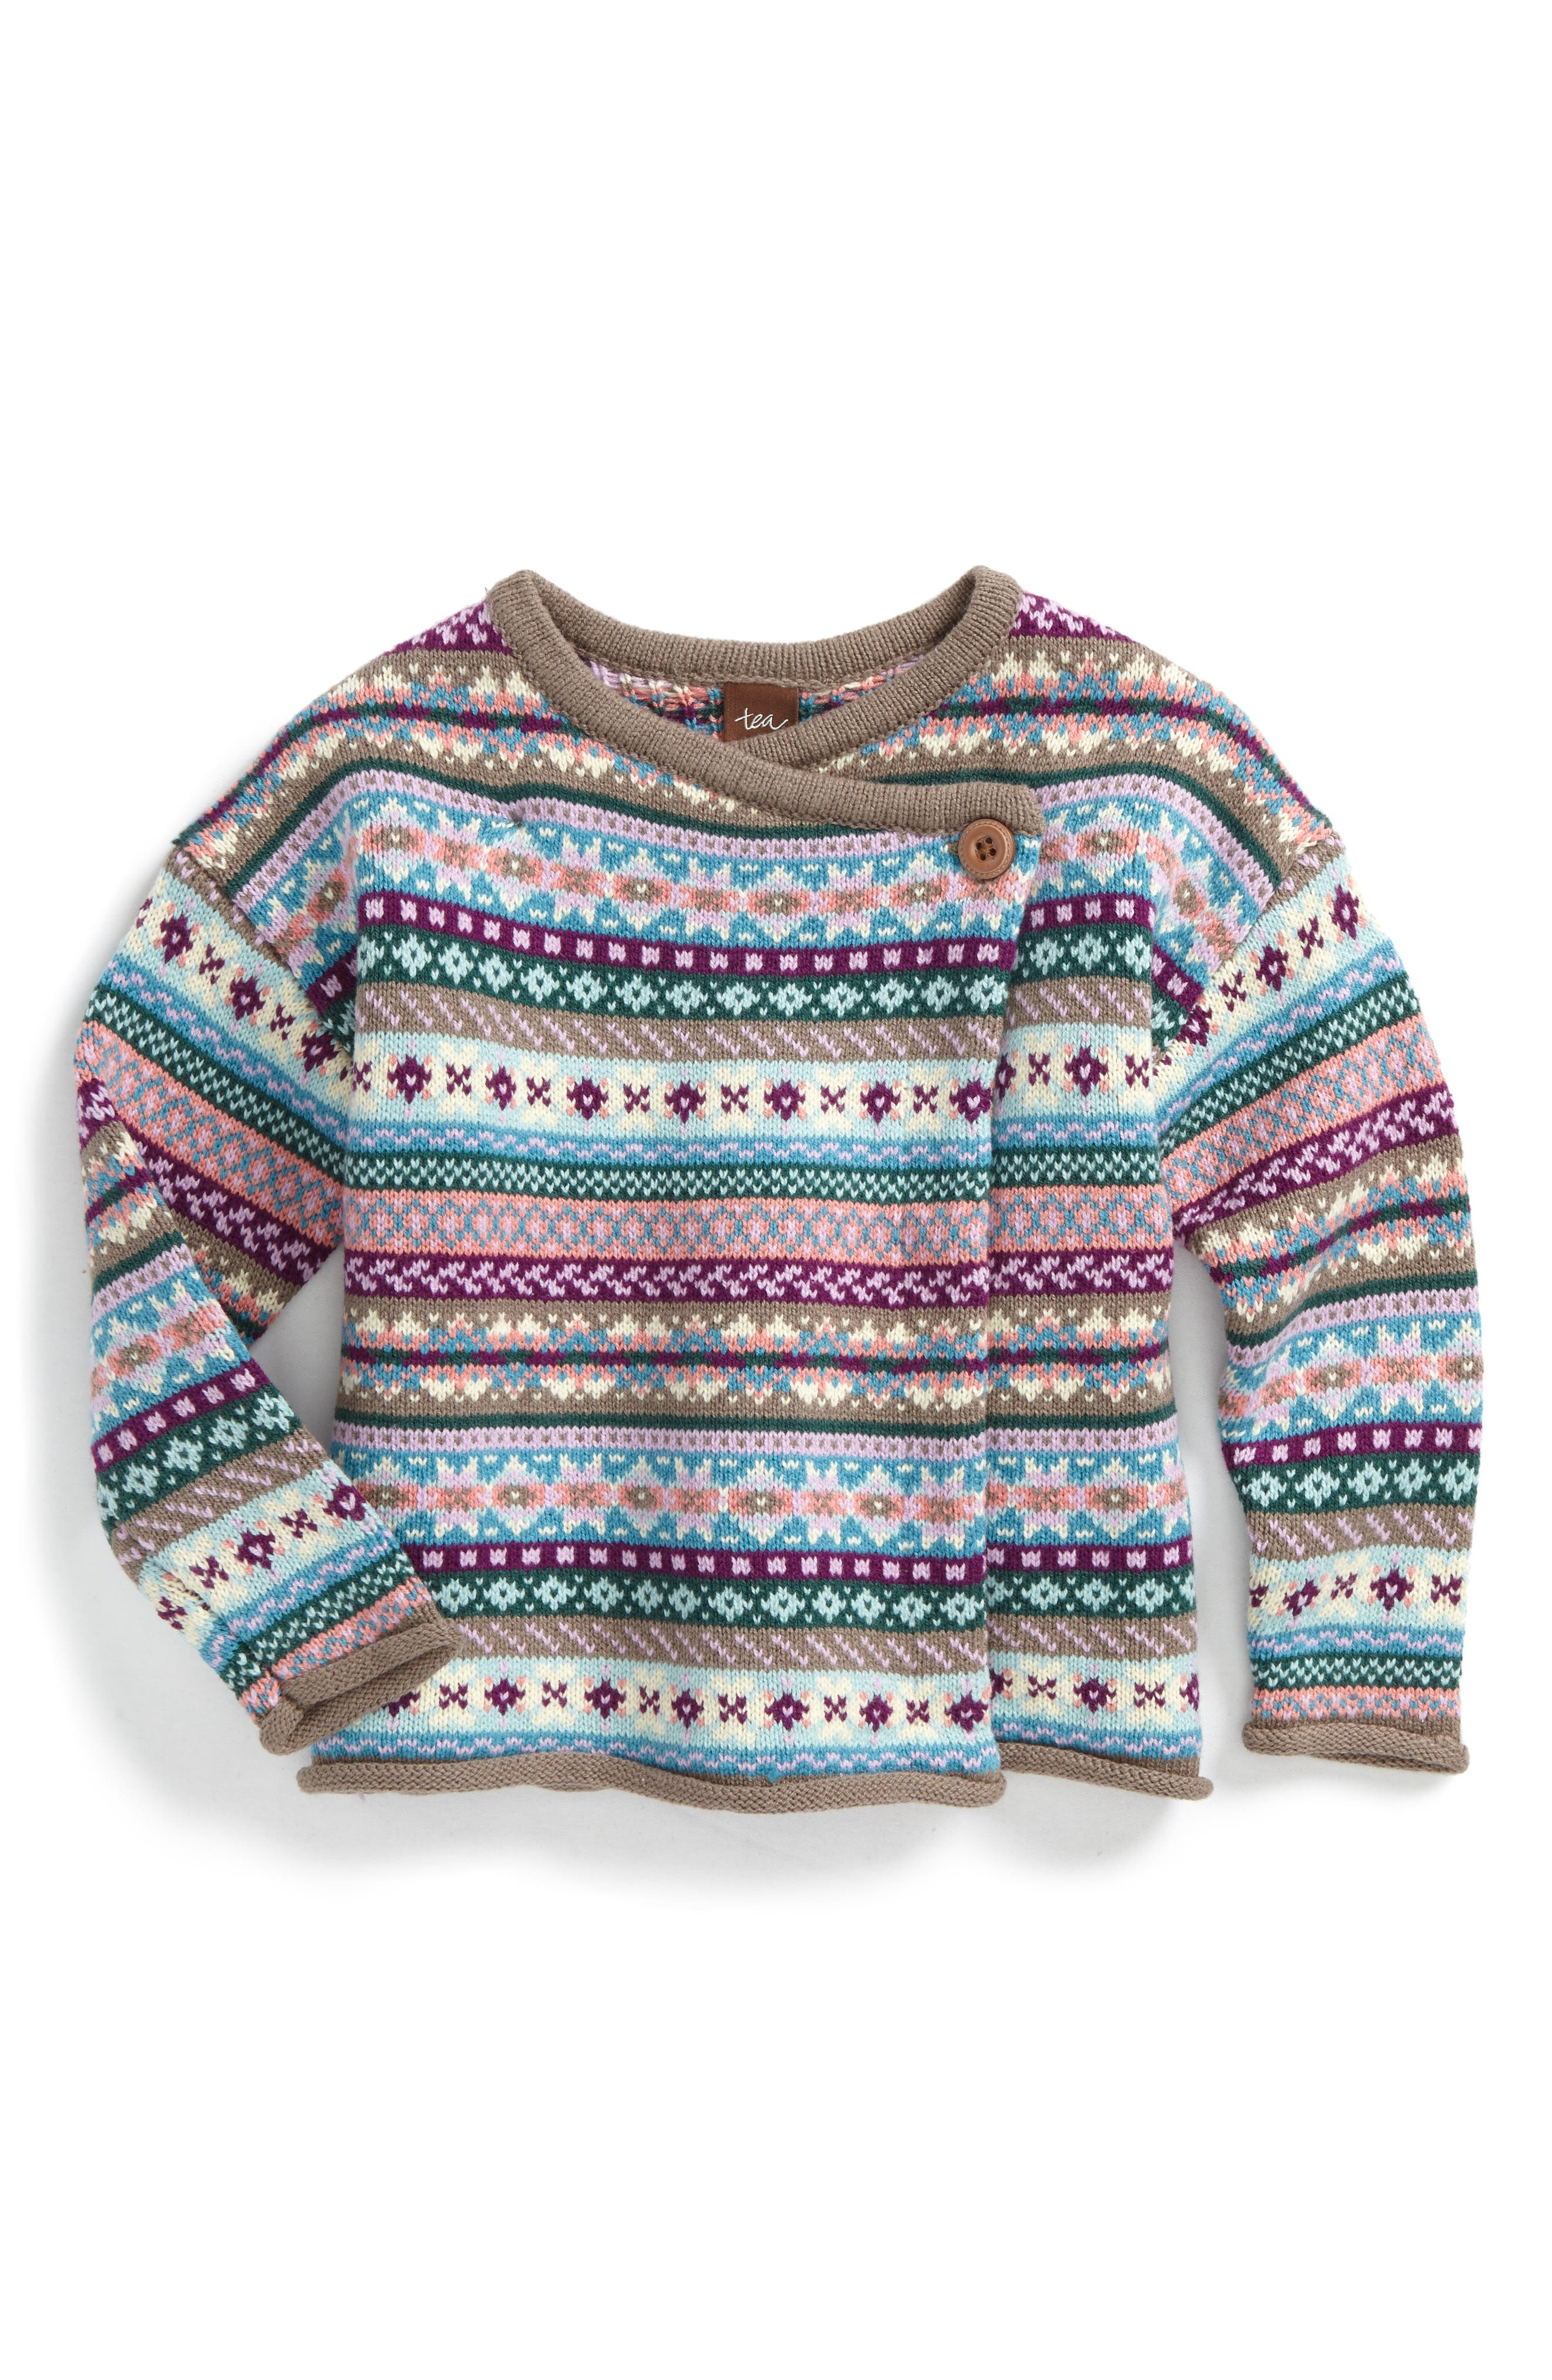 Tea Collection Caspian Fair Isle Knit Cardigan (Toddler Girls, Little Girls & Big Girls)